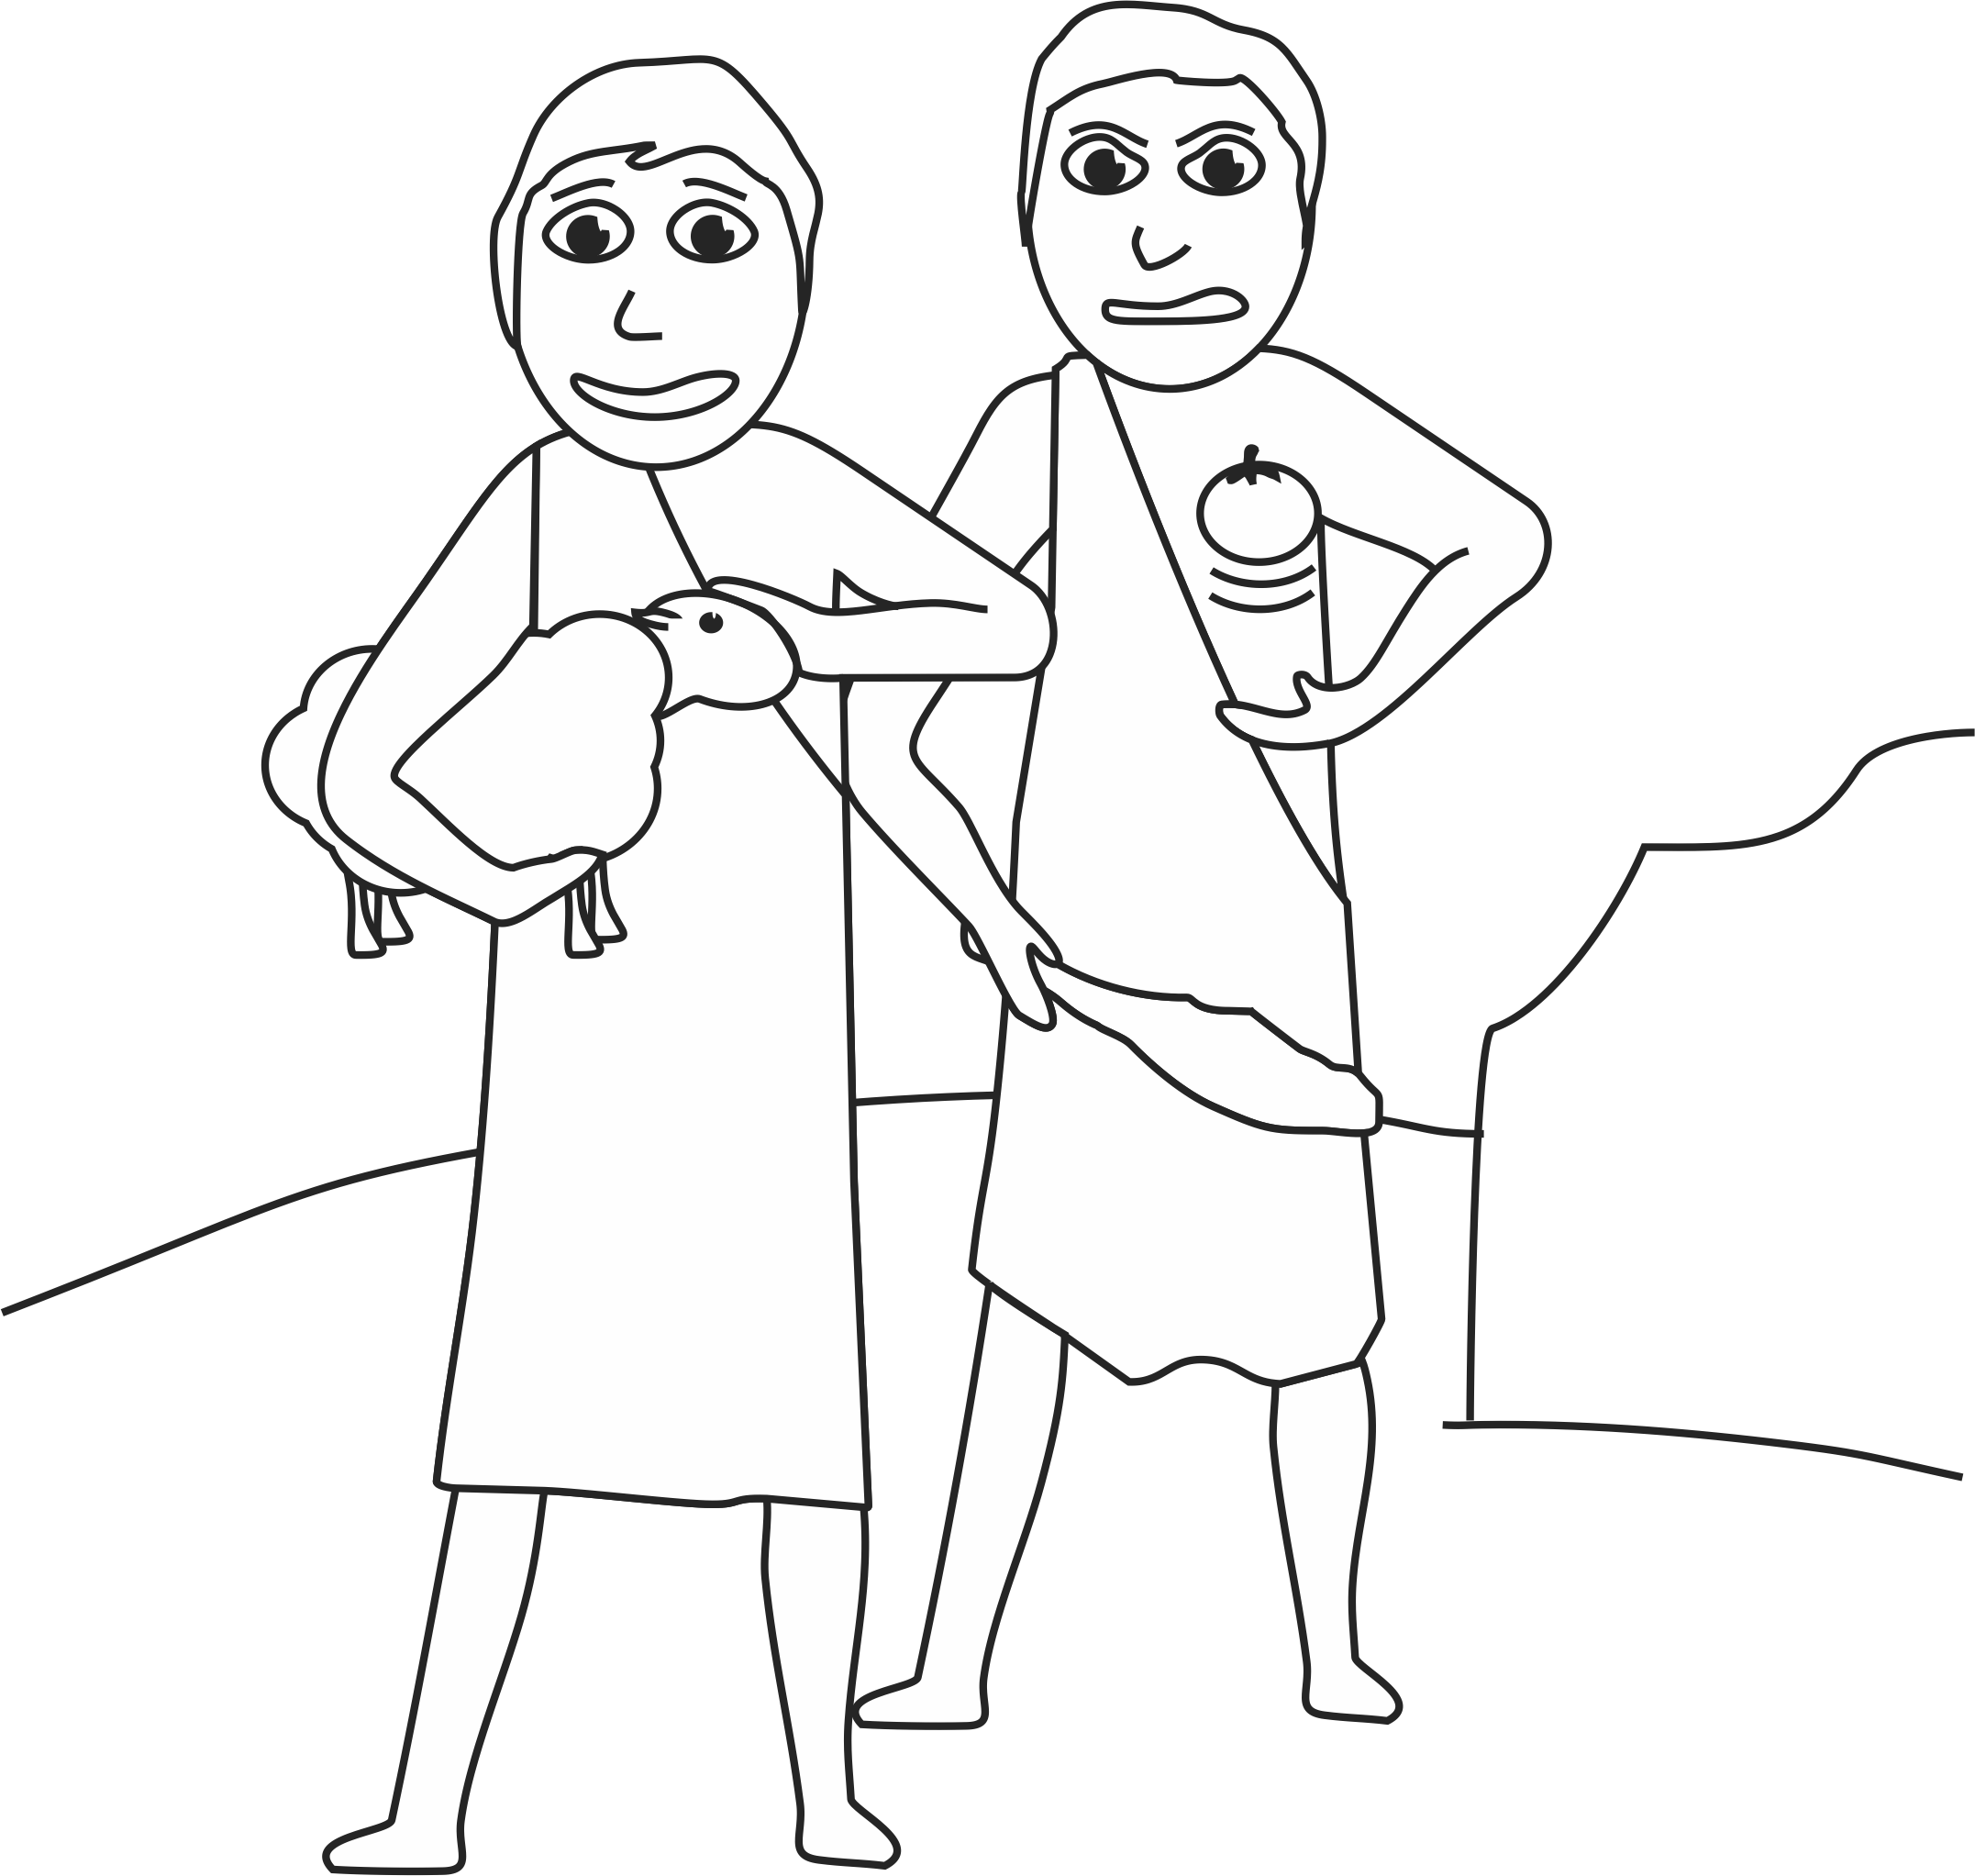 cain and abel coloring pages - photo#12